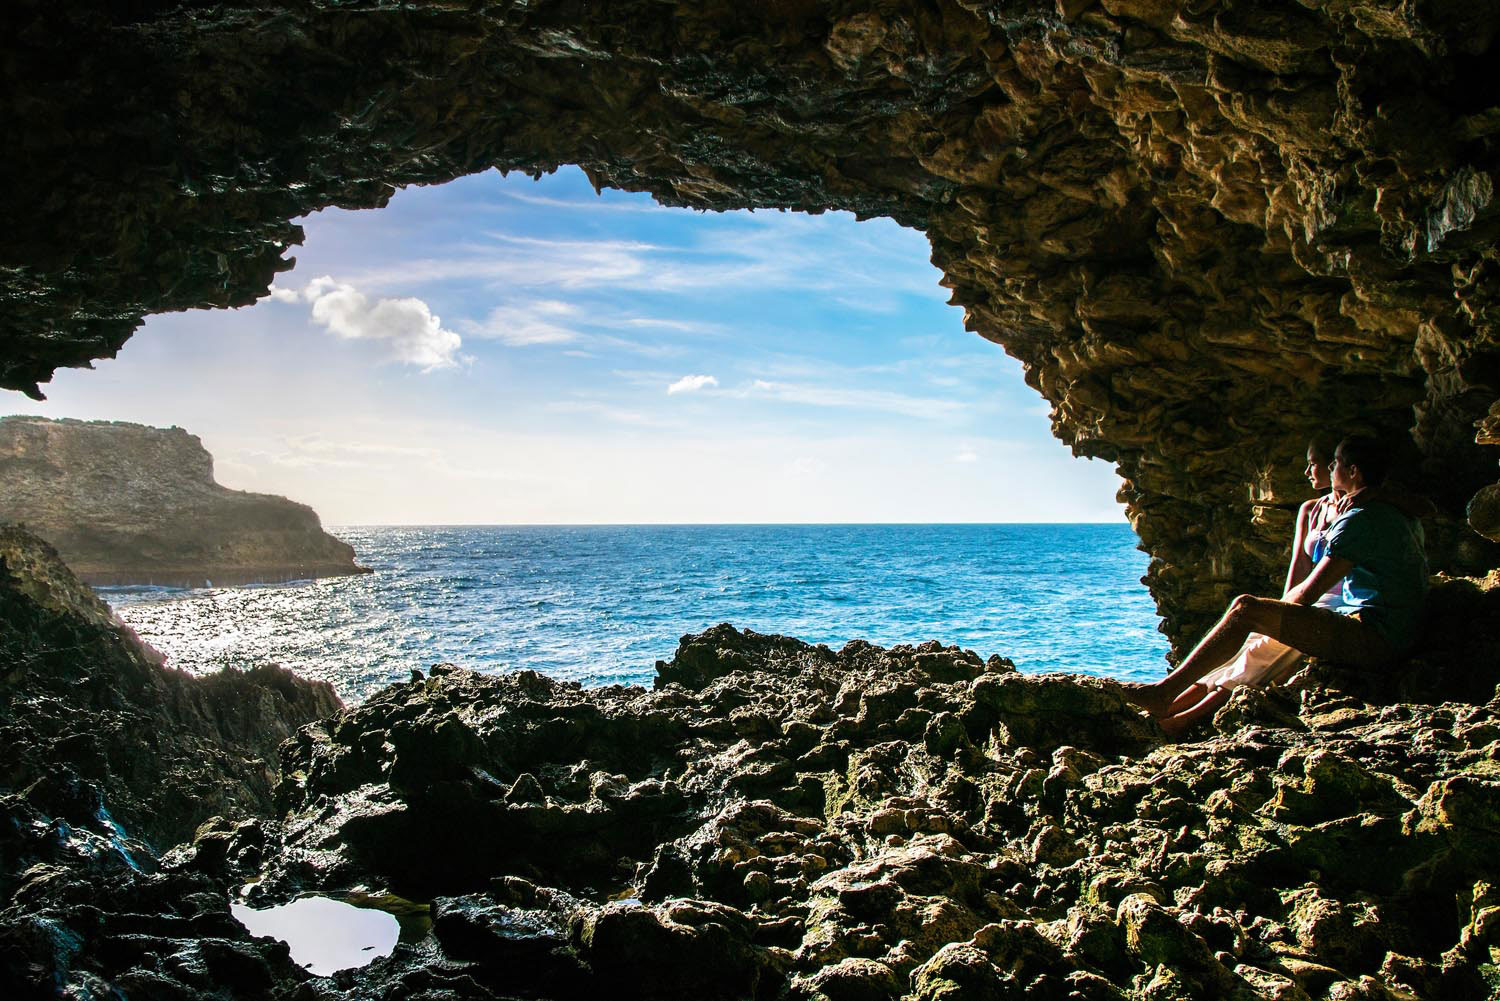 Enjoying the view from Animal Flower Cave near the northernmost tip of Barbados. Photo courtesy Barbados Tourism Marketing Inc